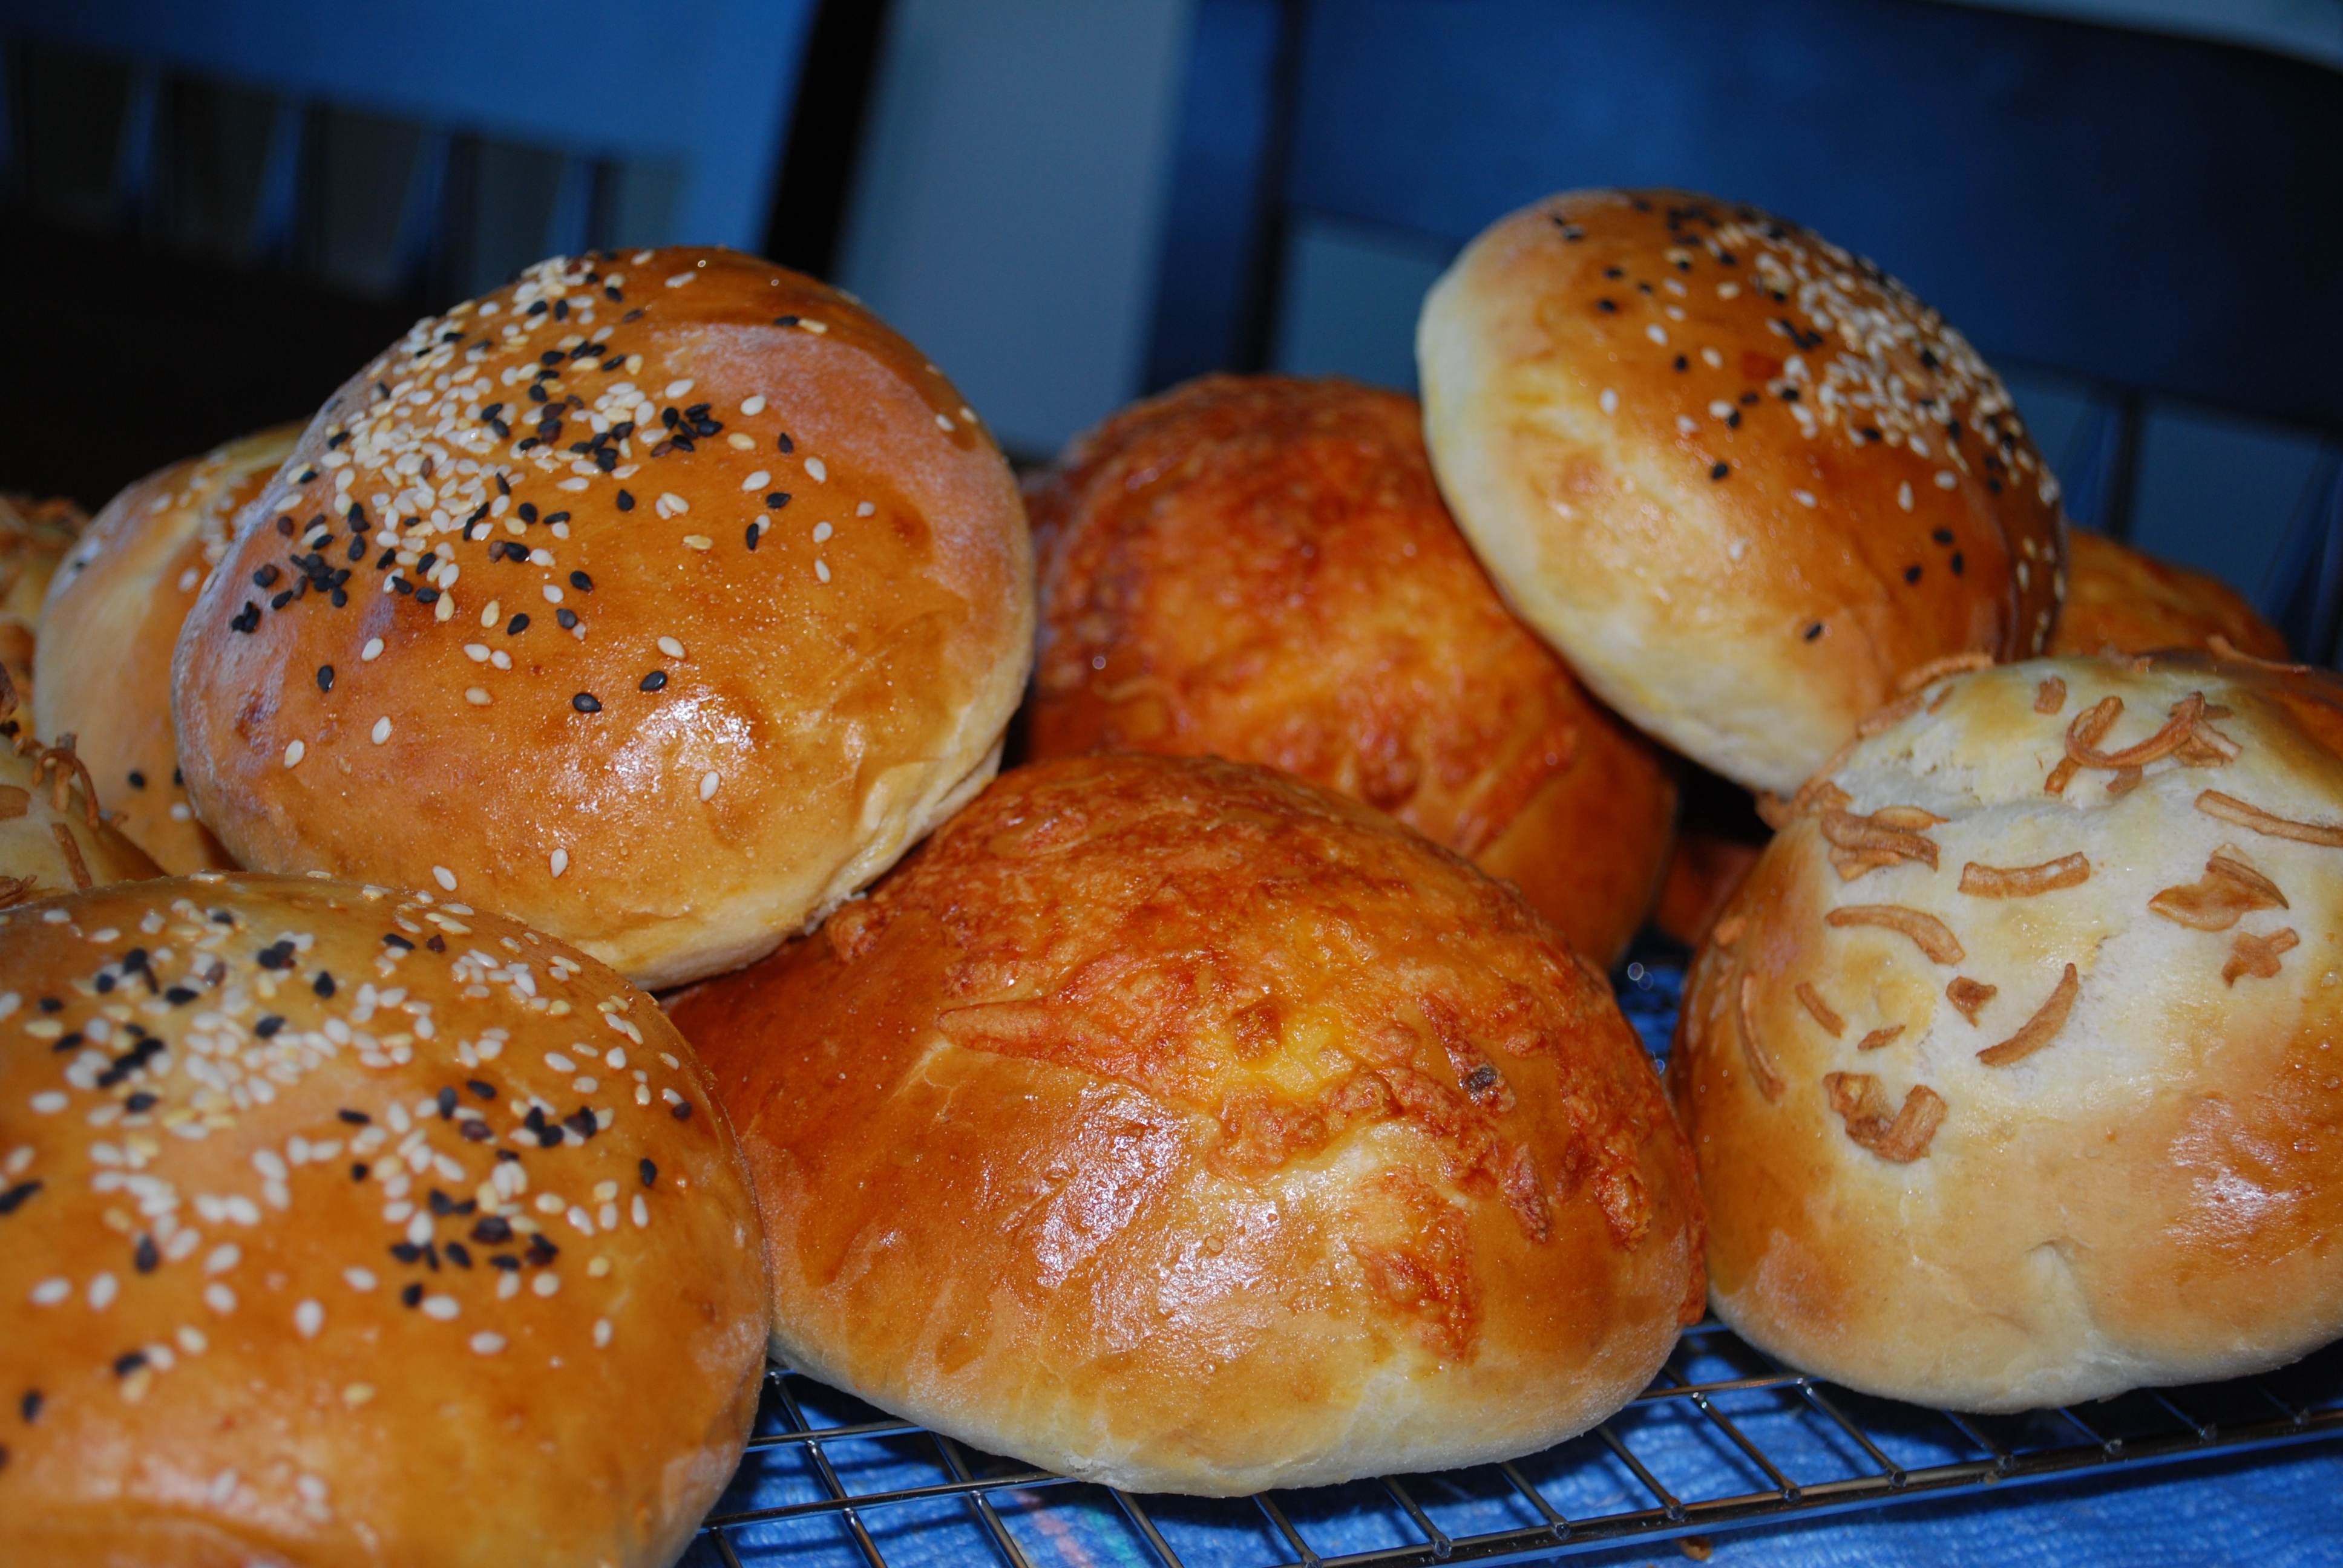 Hamburger buns for the cook-out.